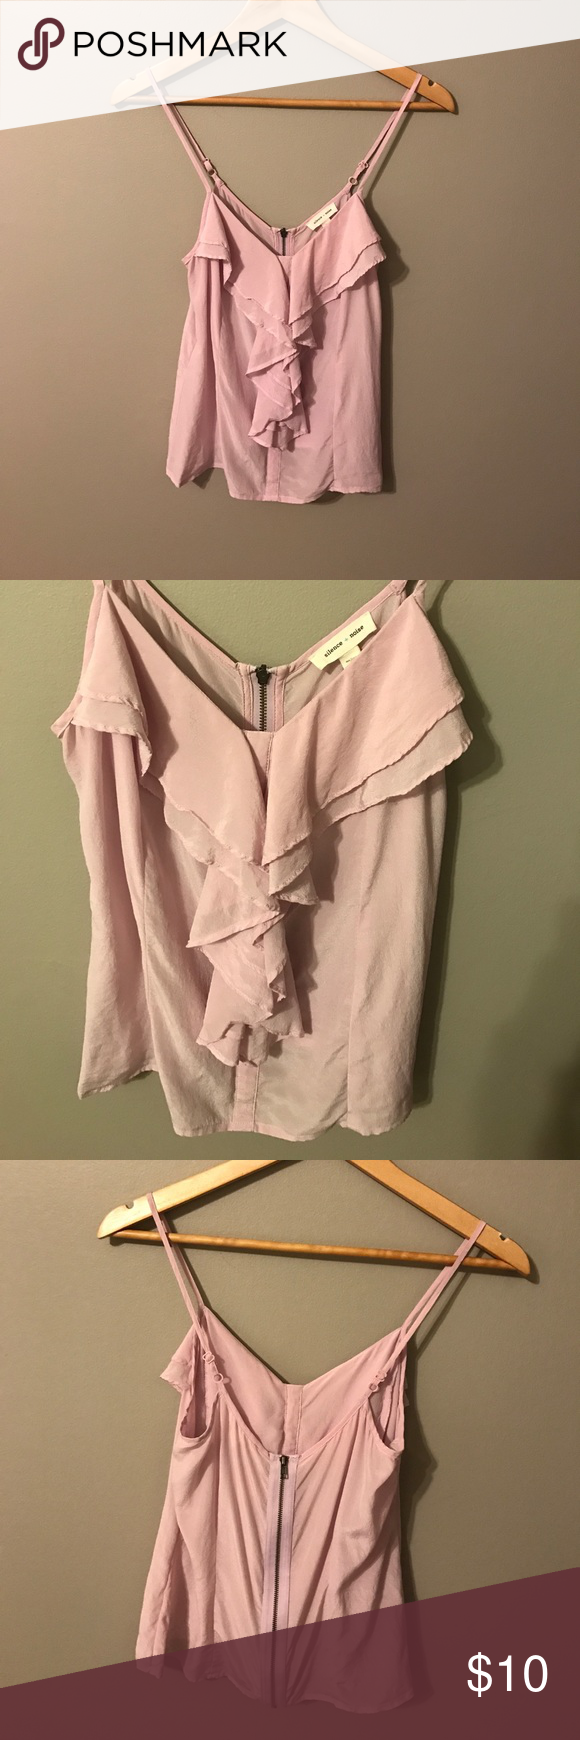 UO Silence + Noise ruffle front zip back camisole I'd say this runs a little small, more like an XS? Urban Outfitters Tops Camisoles